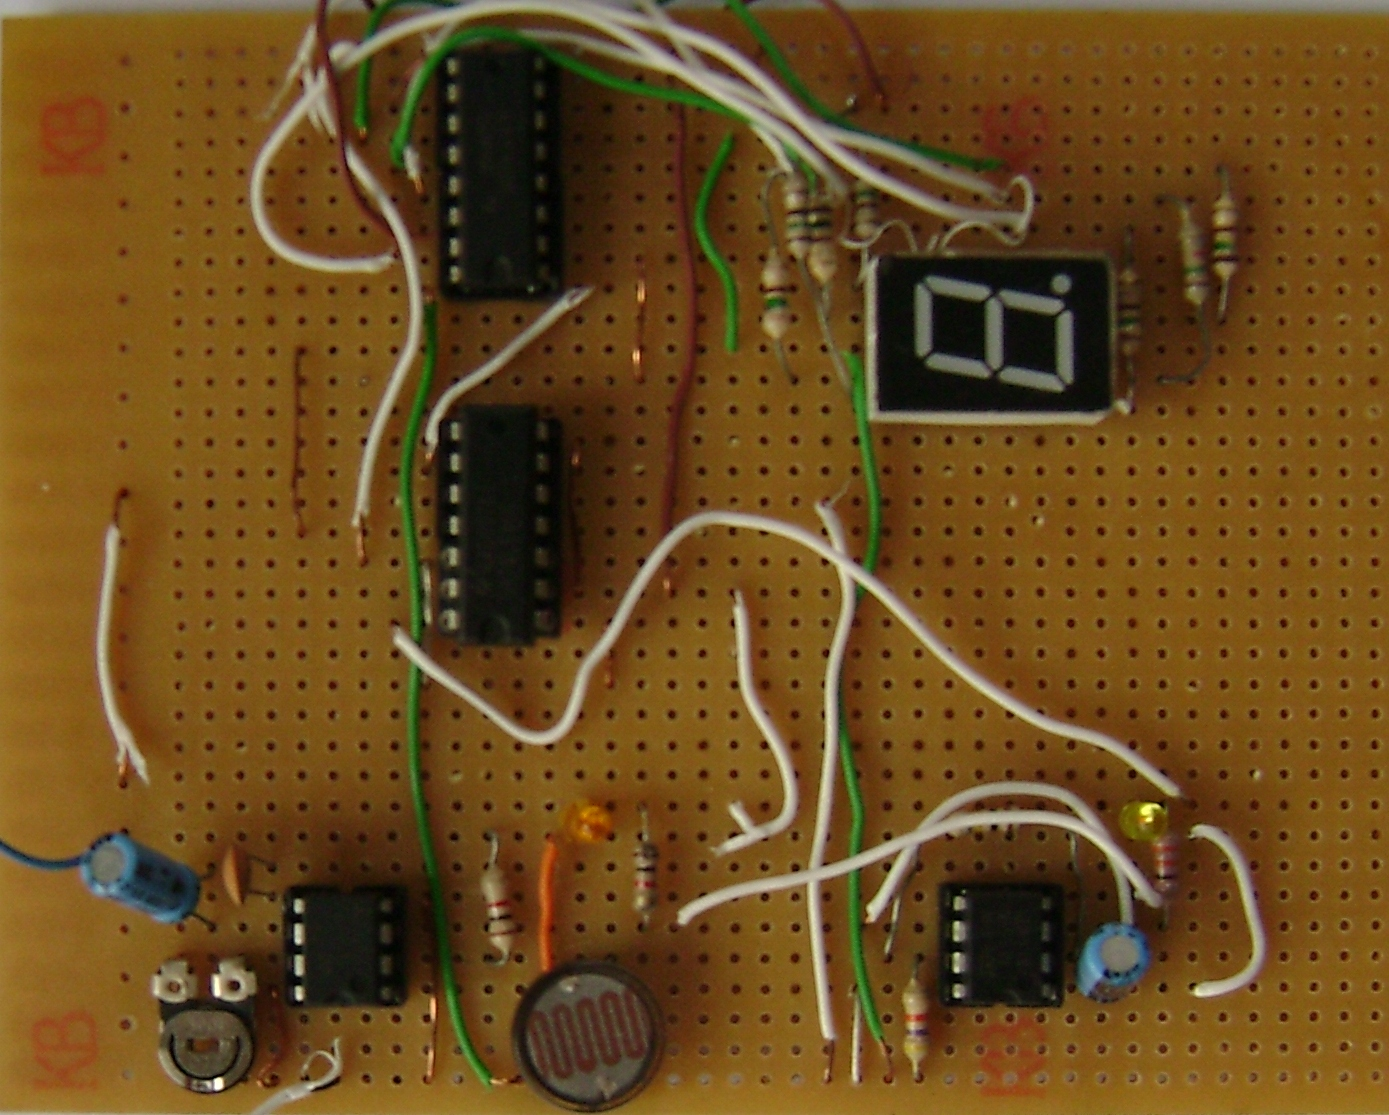 dld mini projects circuit diagram trailer lights wiring nz digital object counter using ldr and ic buildcircuit click